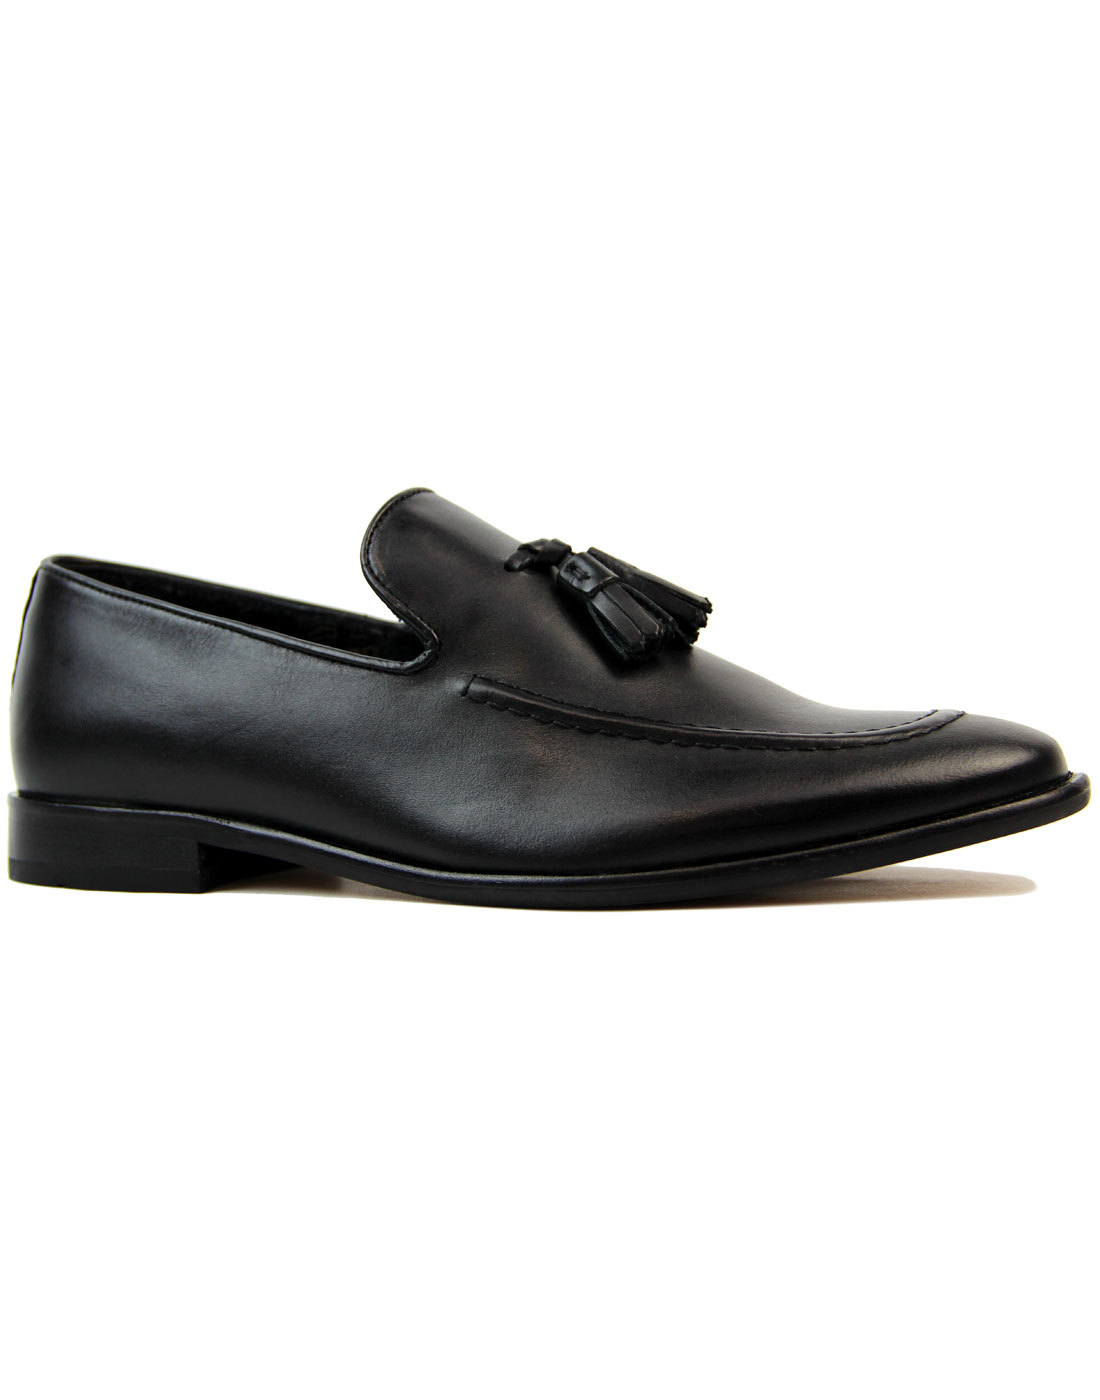 Kent IKON Retro Mod Slip On Tassel Loafers BLACK